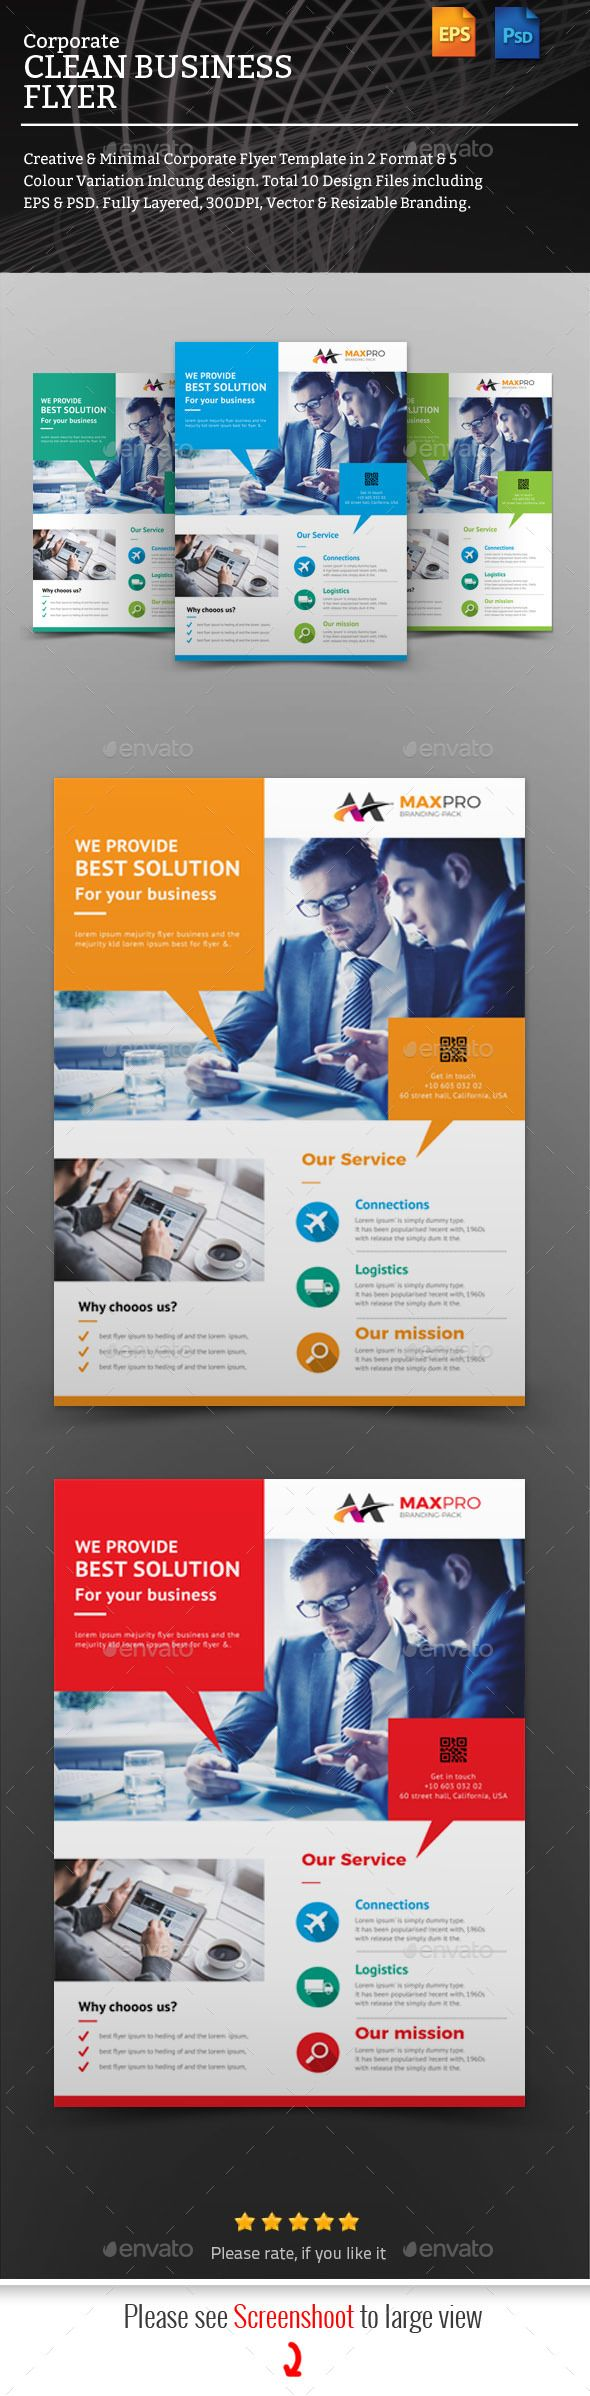 Flyers Flyer Template Very Powerful  Professional Corporate Clean